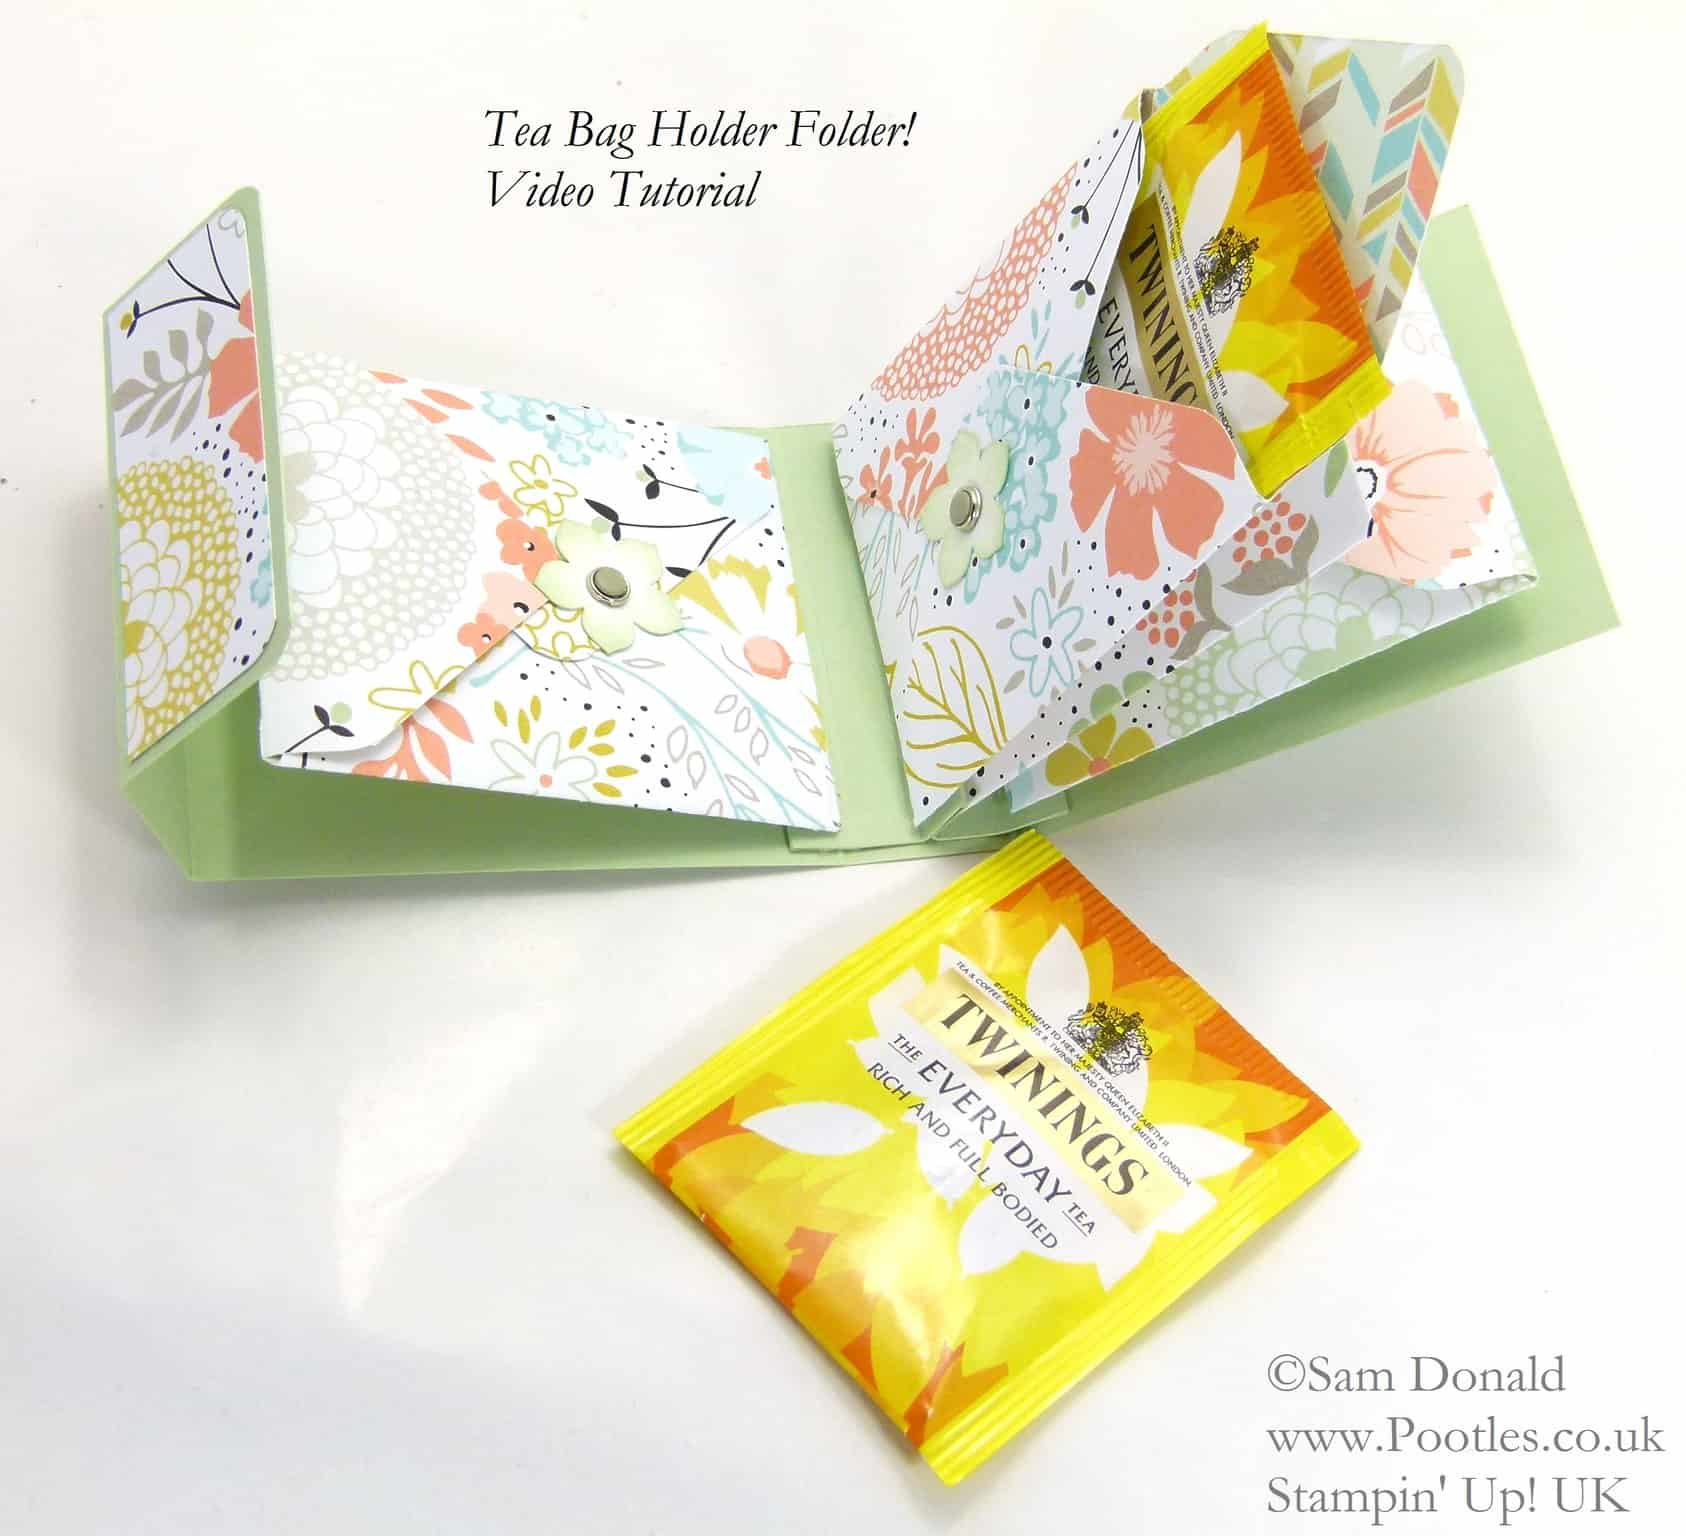 POOTLES Stampin' Up! UK Tea Bag Holder Folder Tutorial opened flat